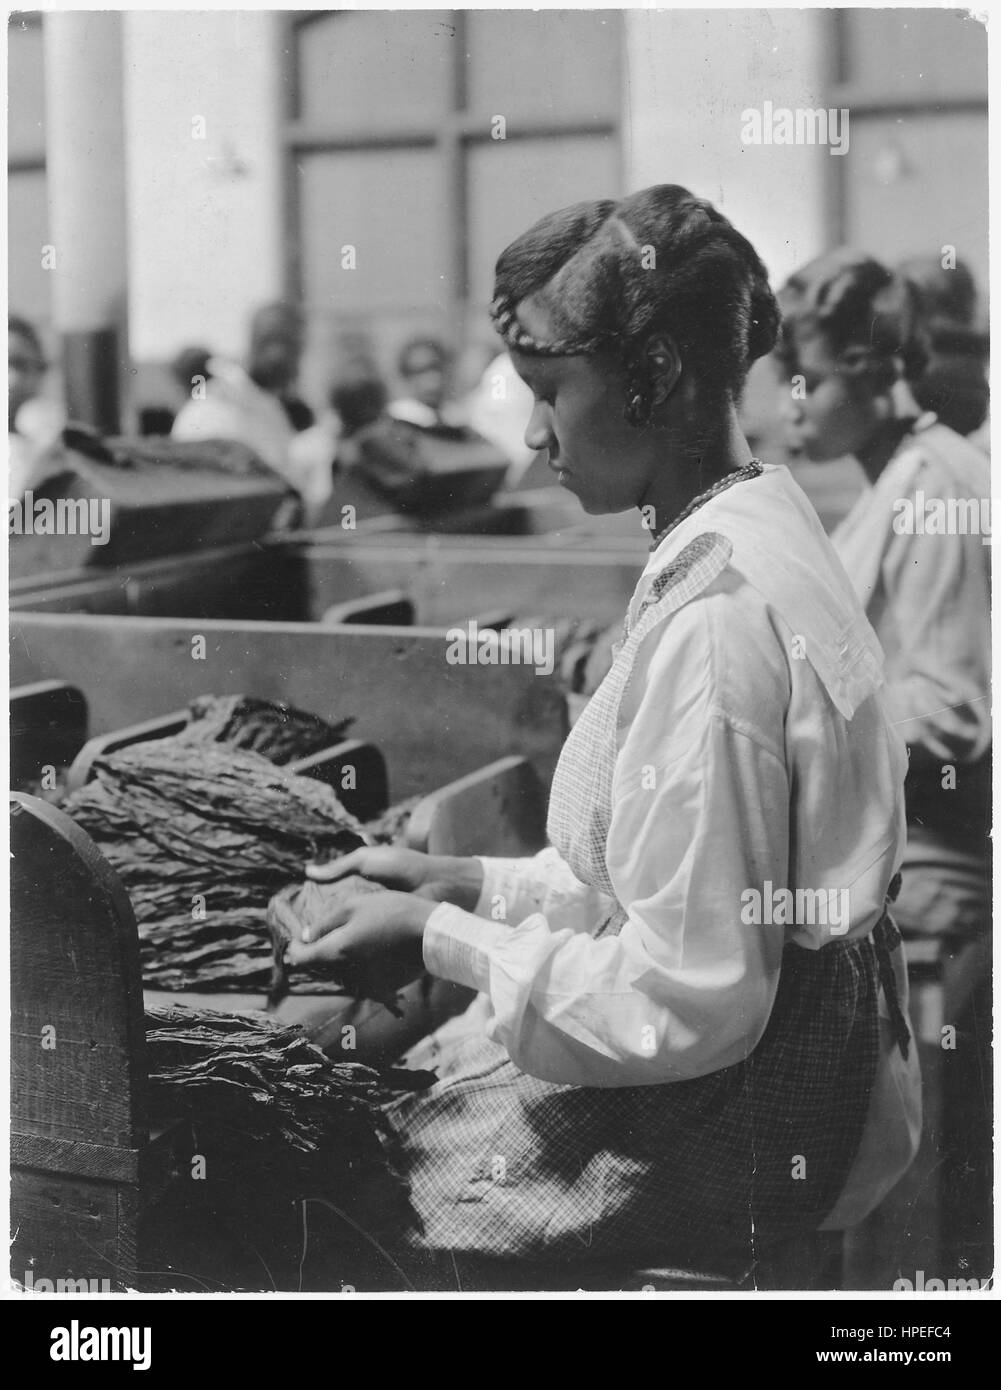 Photograph of a woman working at tobacco plant with tobacco leaves on the table in front of her, January 19, 1922. - Stock Image